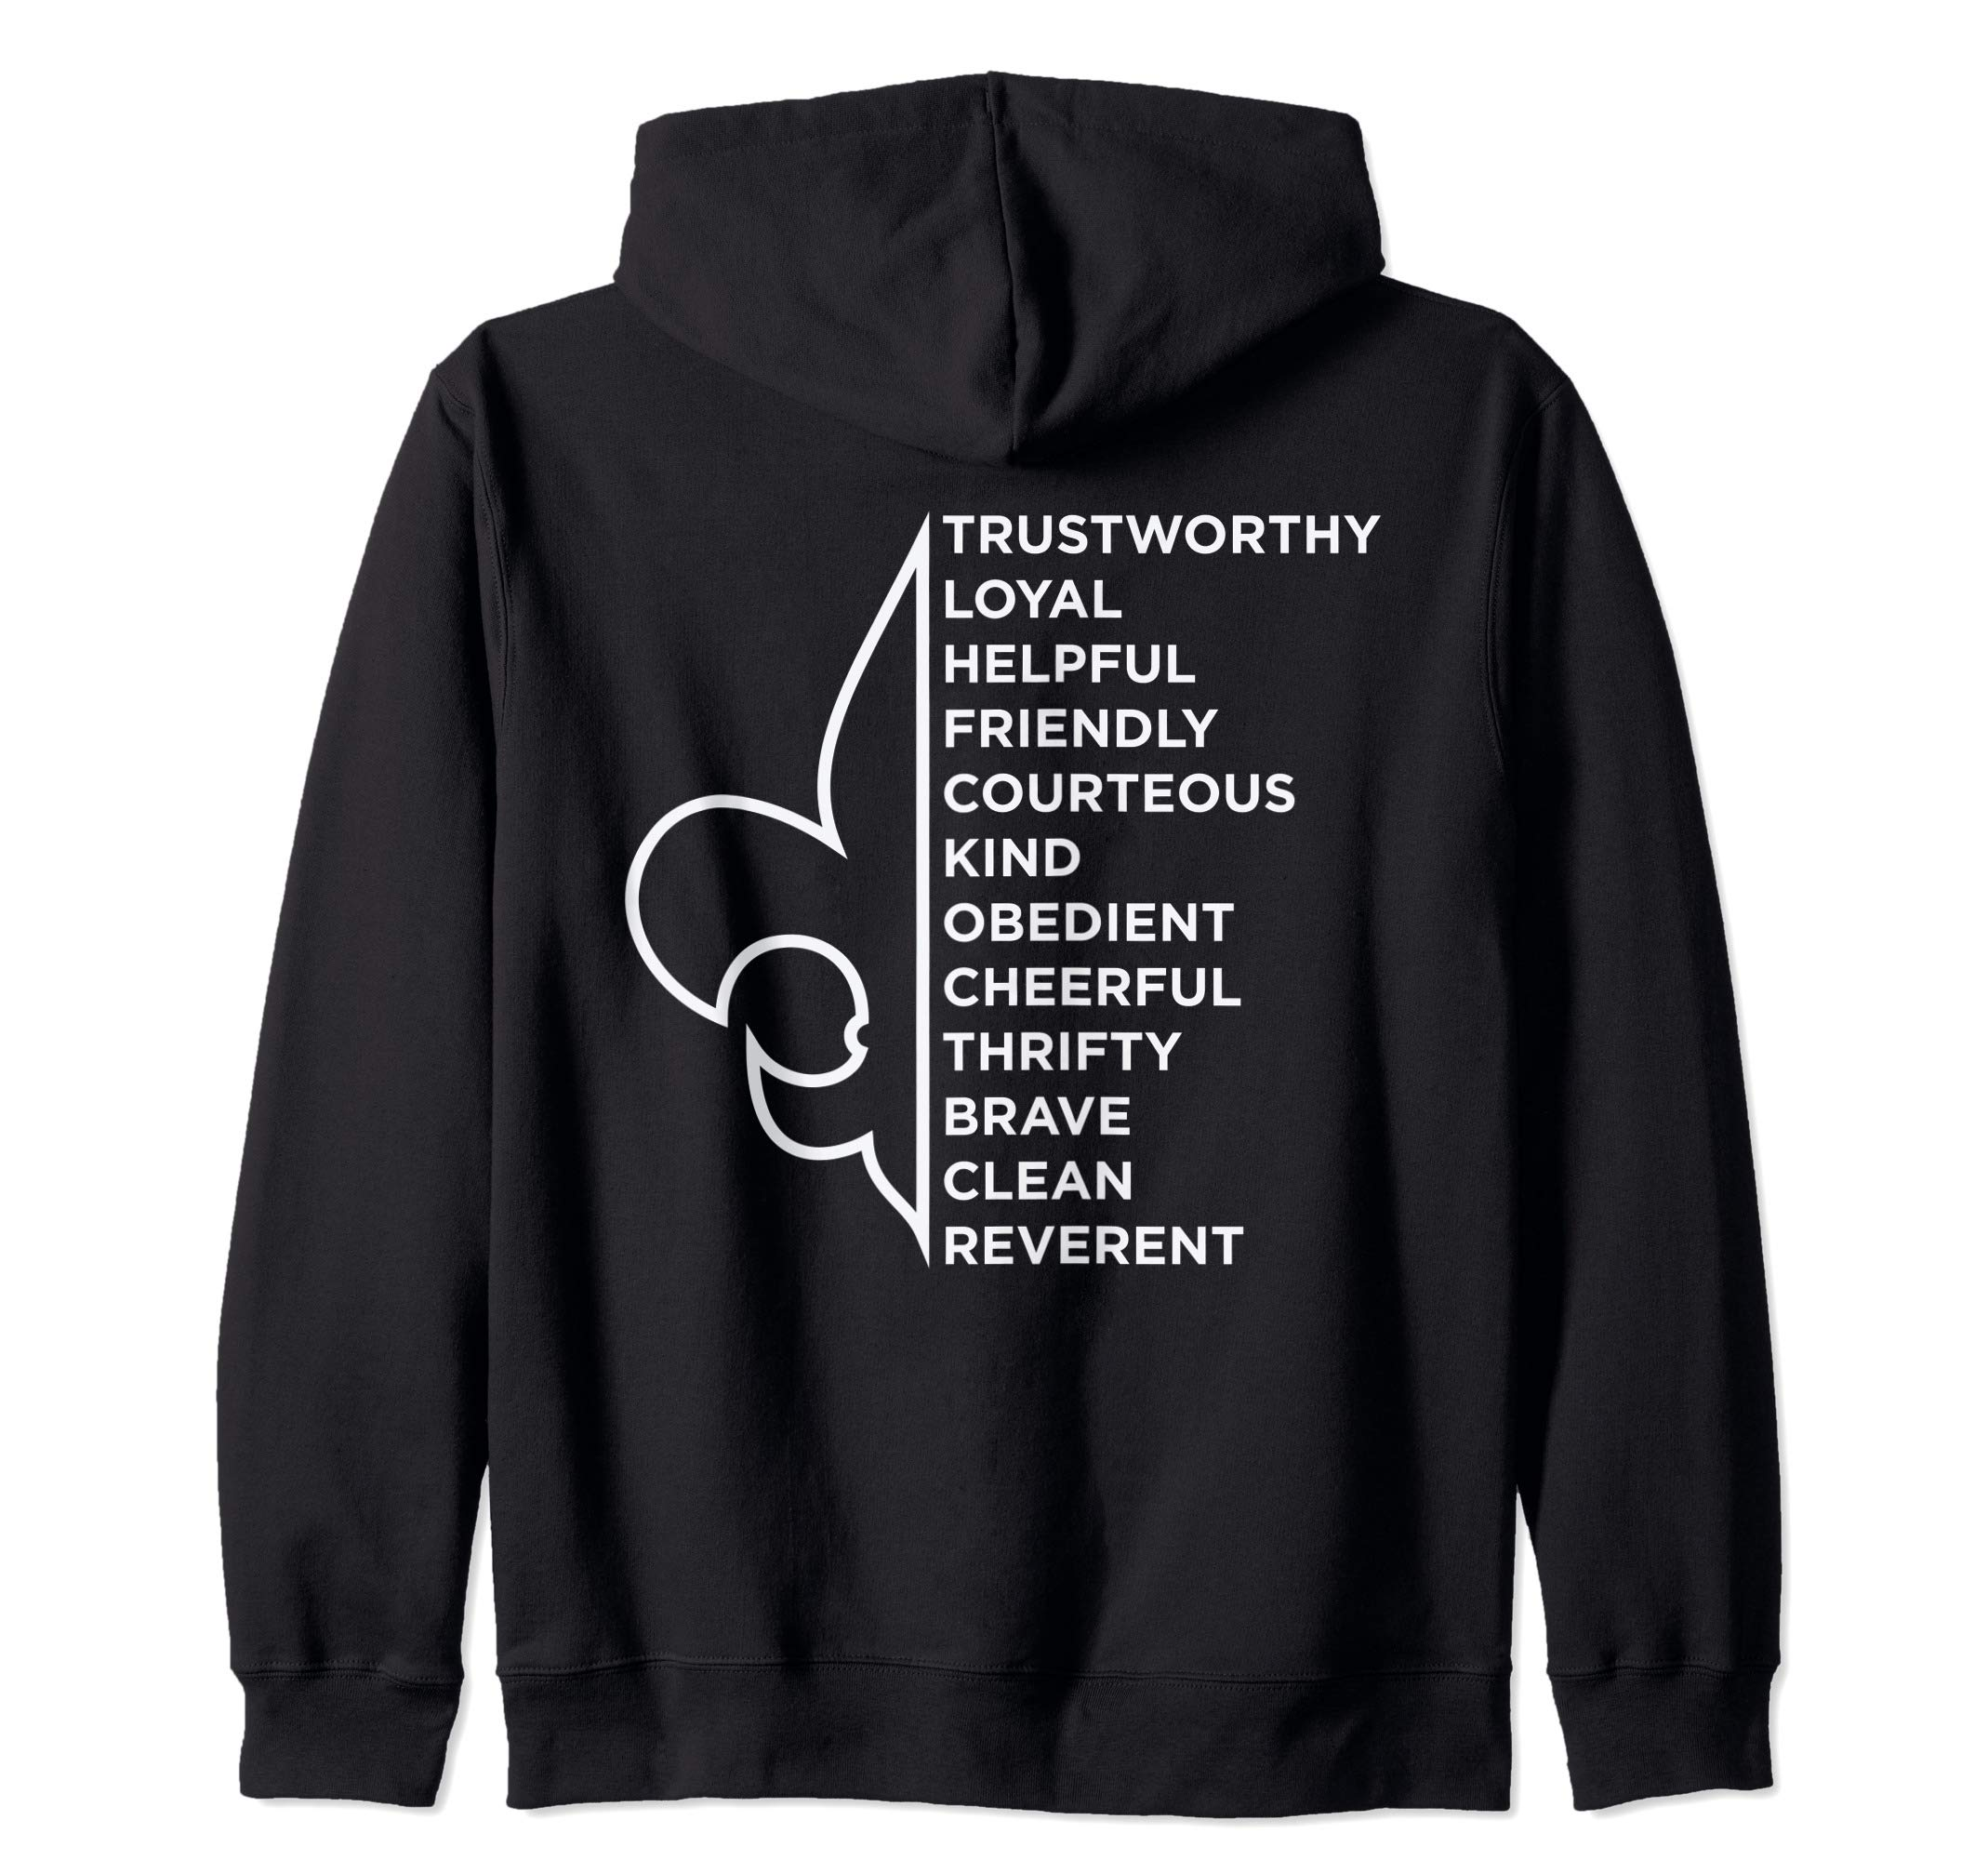 Scout Law | Scouting Zip Hoodie by 107 Scouting